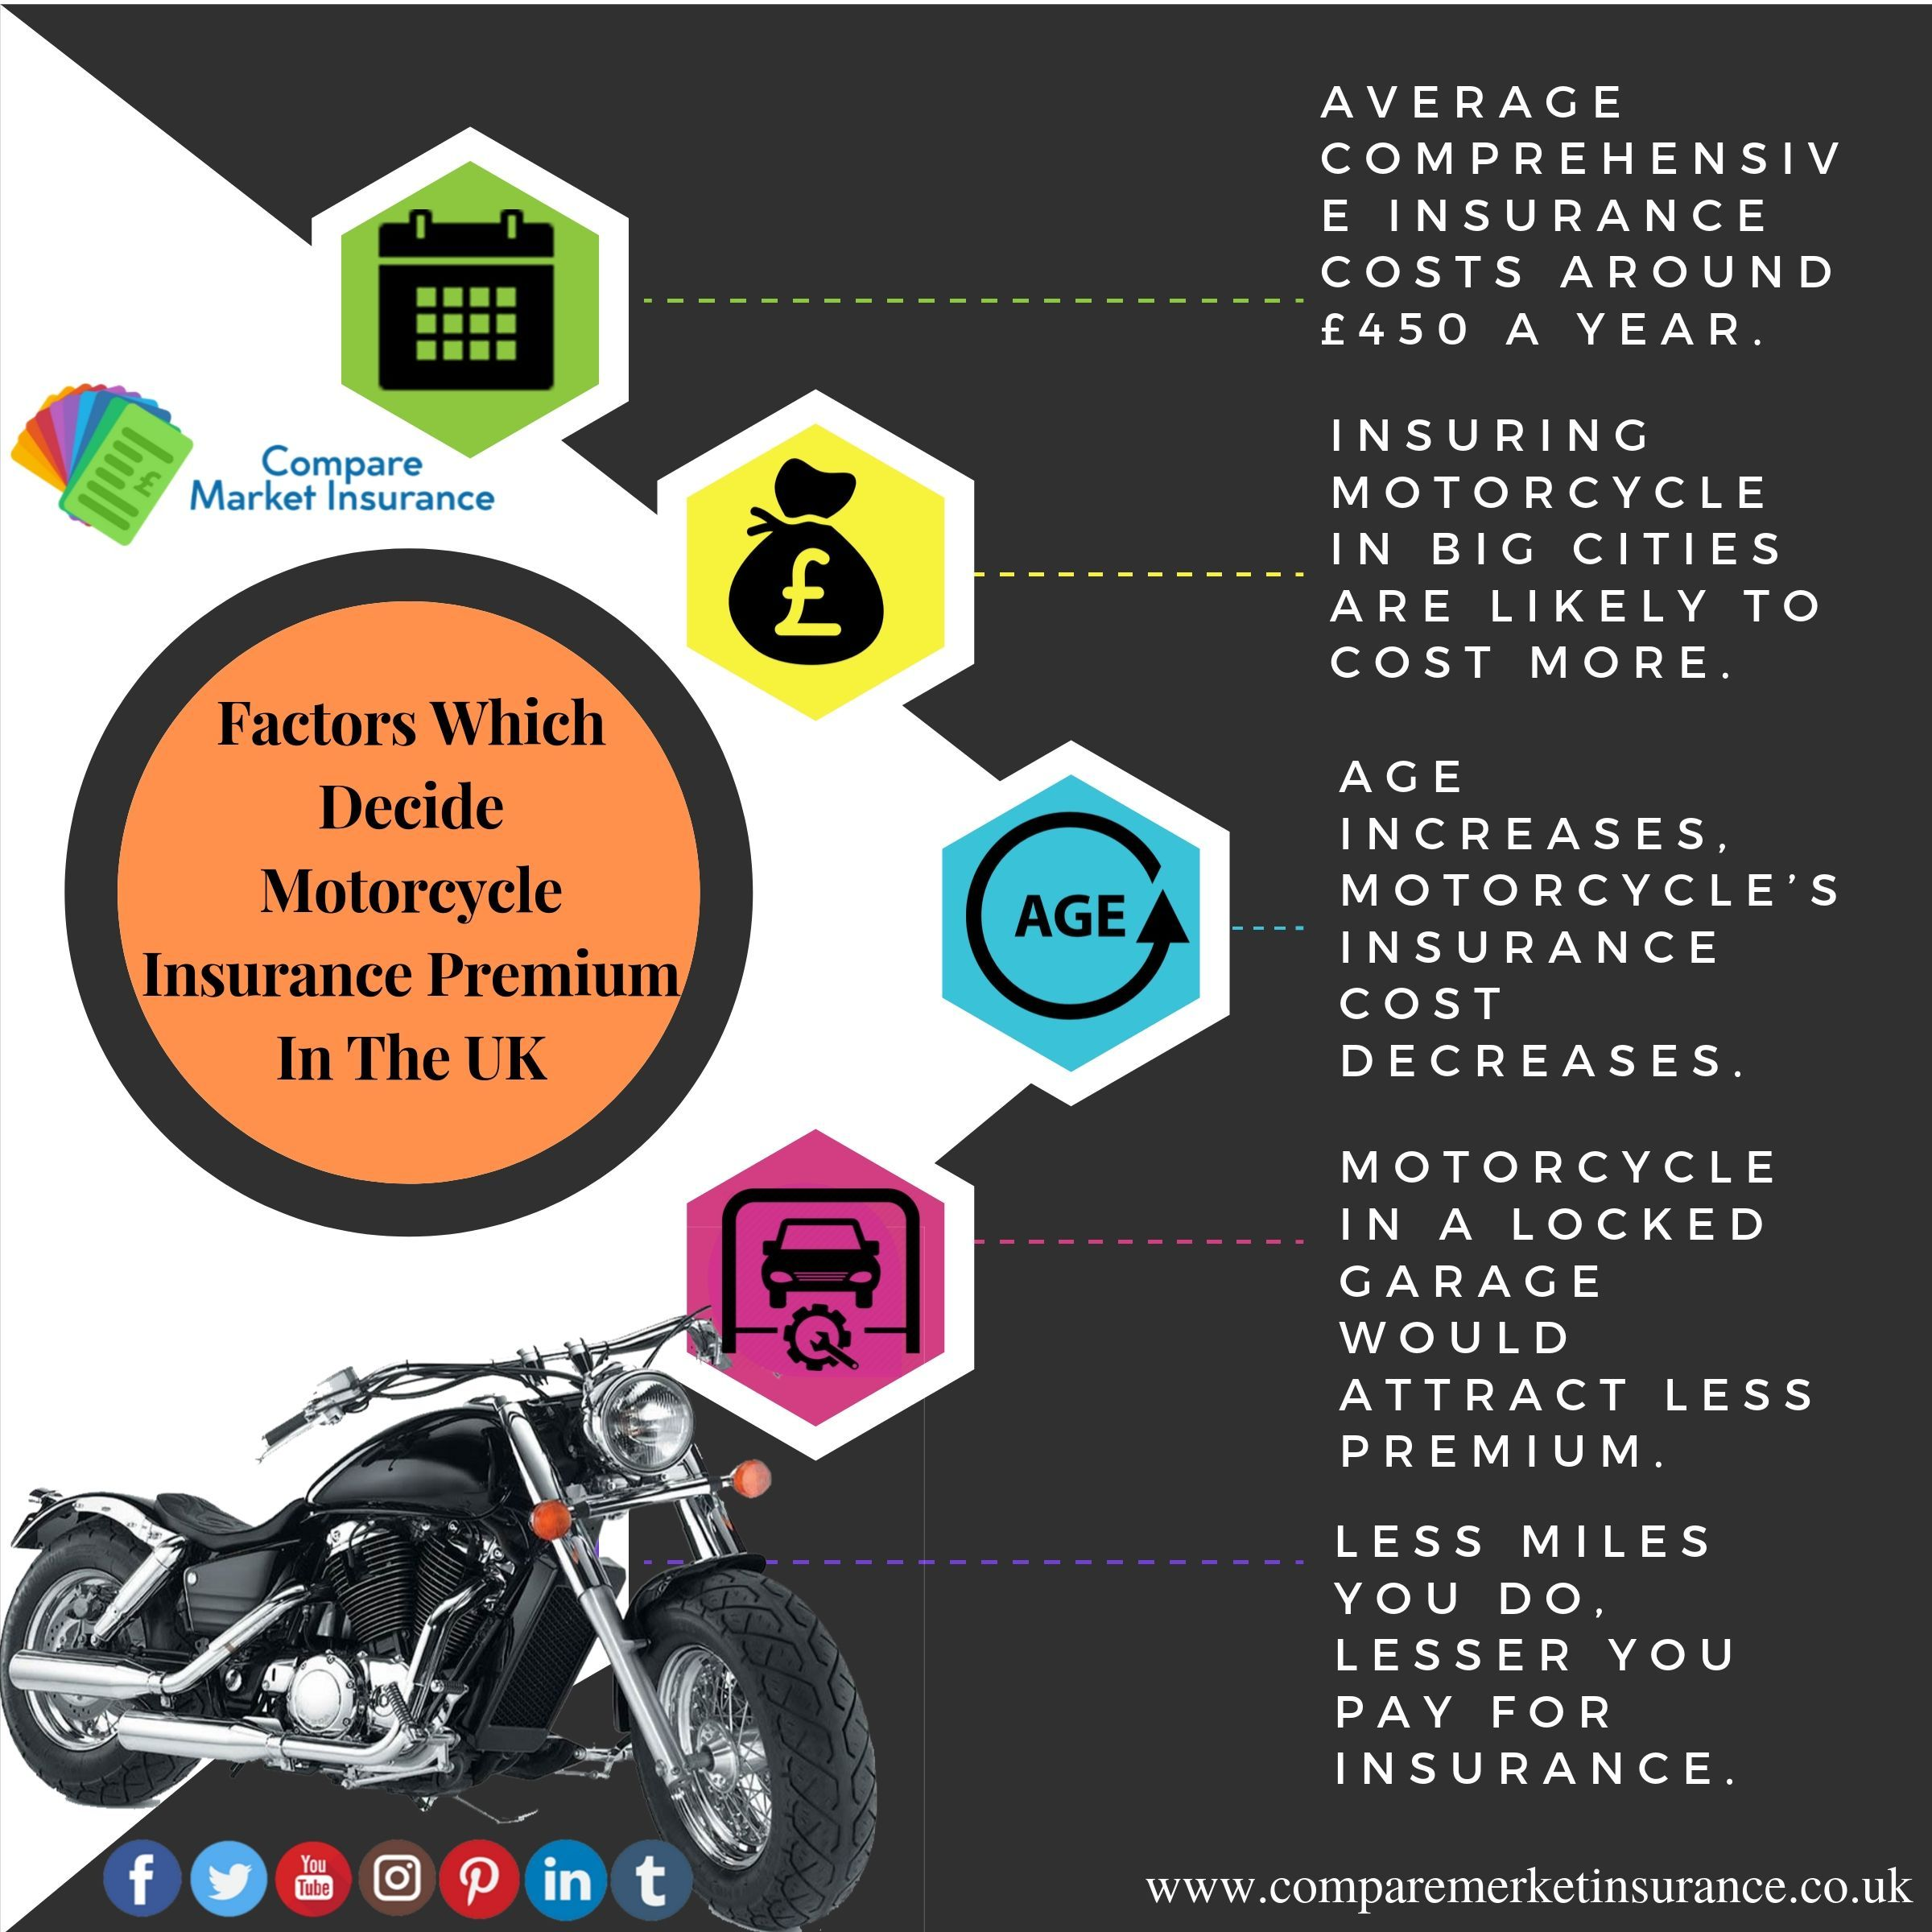 Trying To Pick A LowCost Motorcycle Insurance Policy For